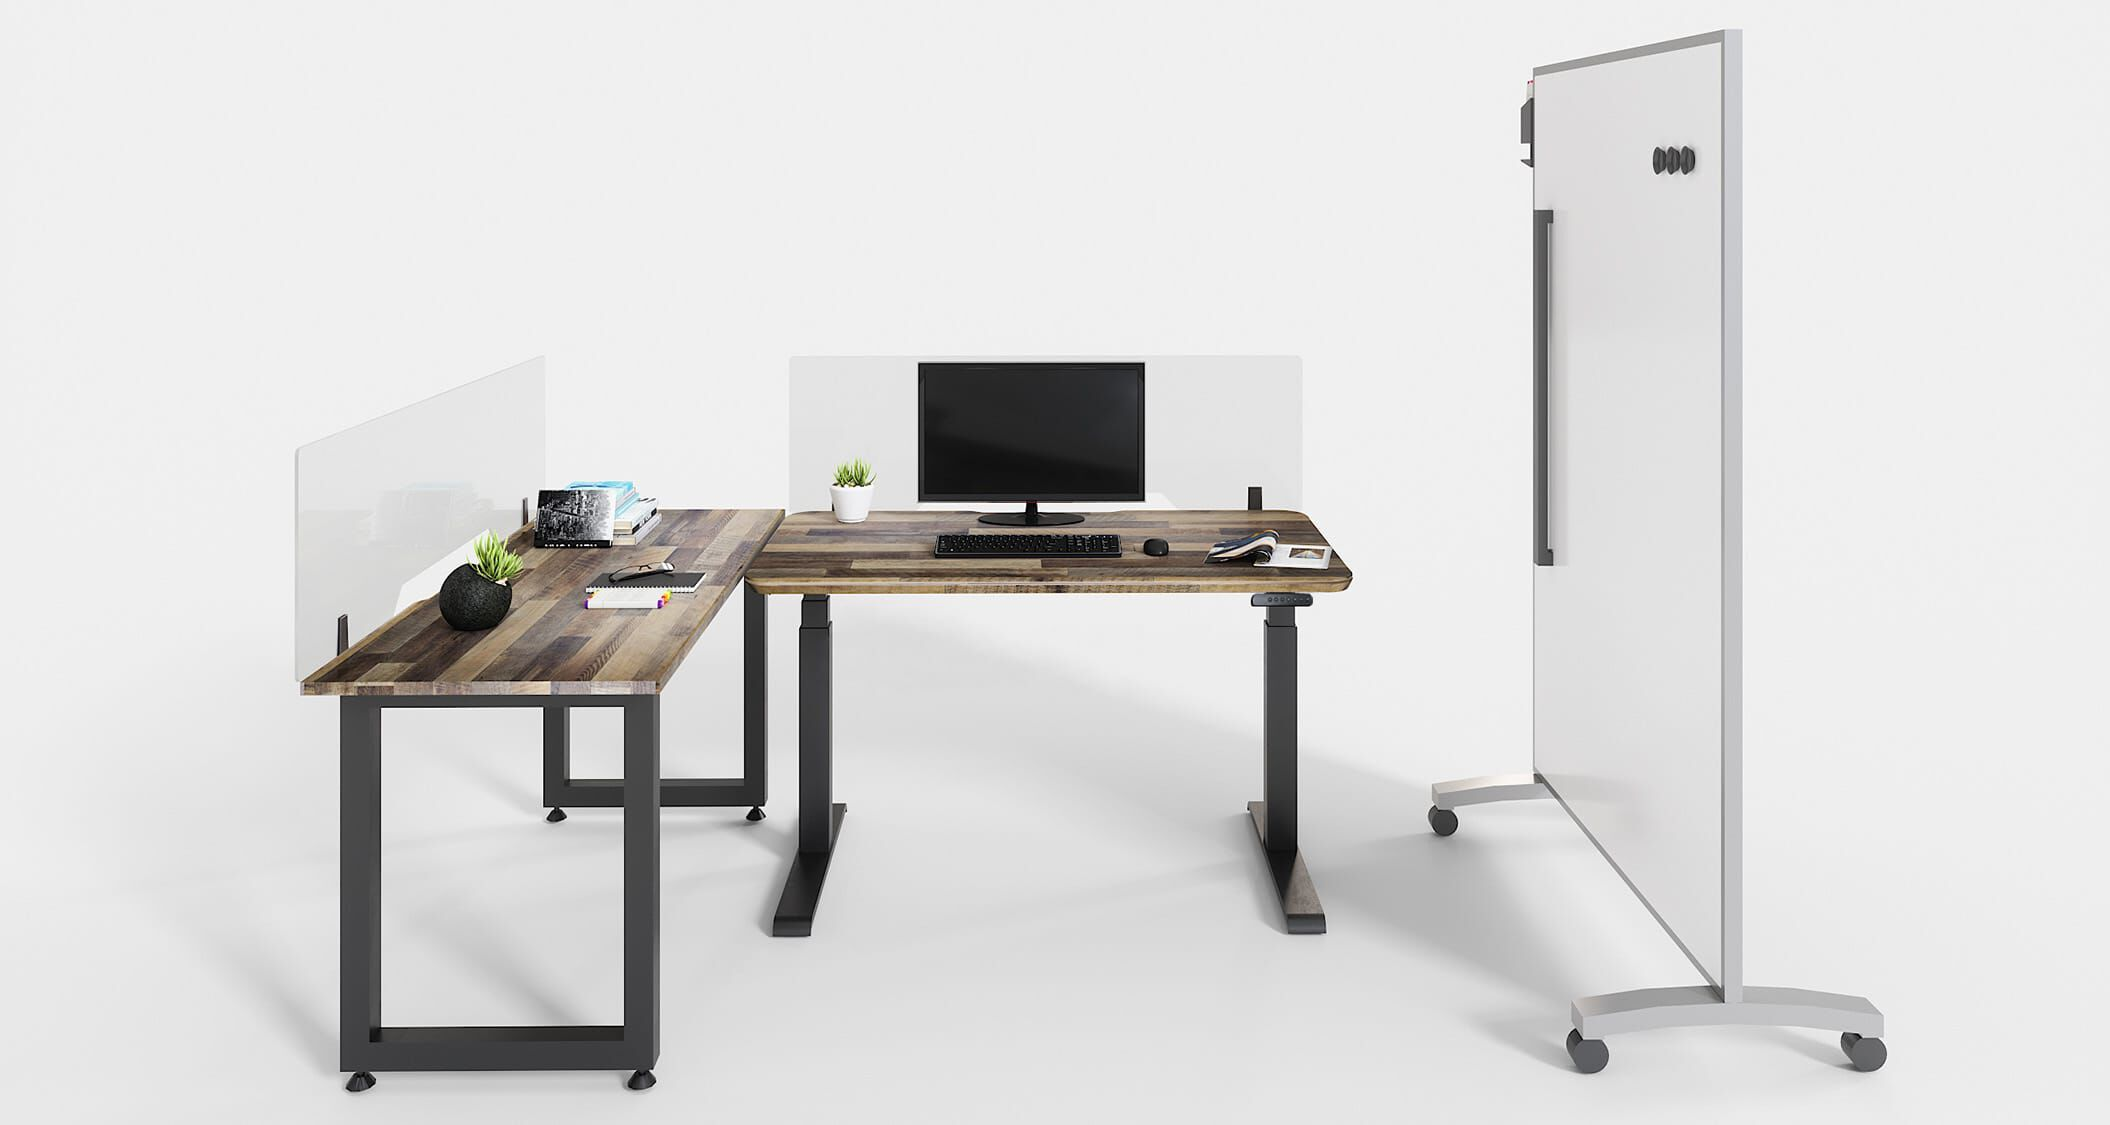 healthy workspace created with Vari products on white background